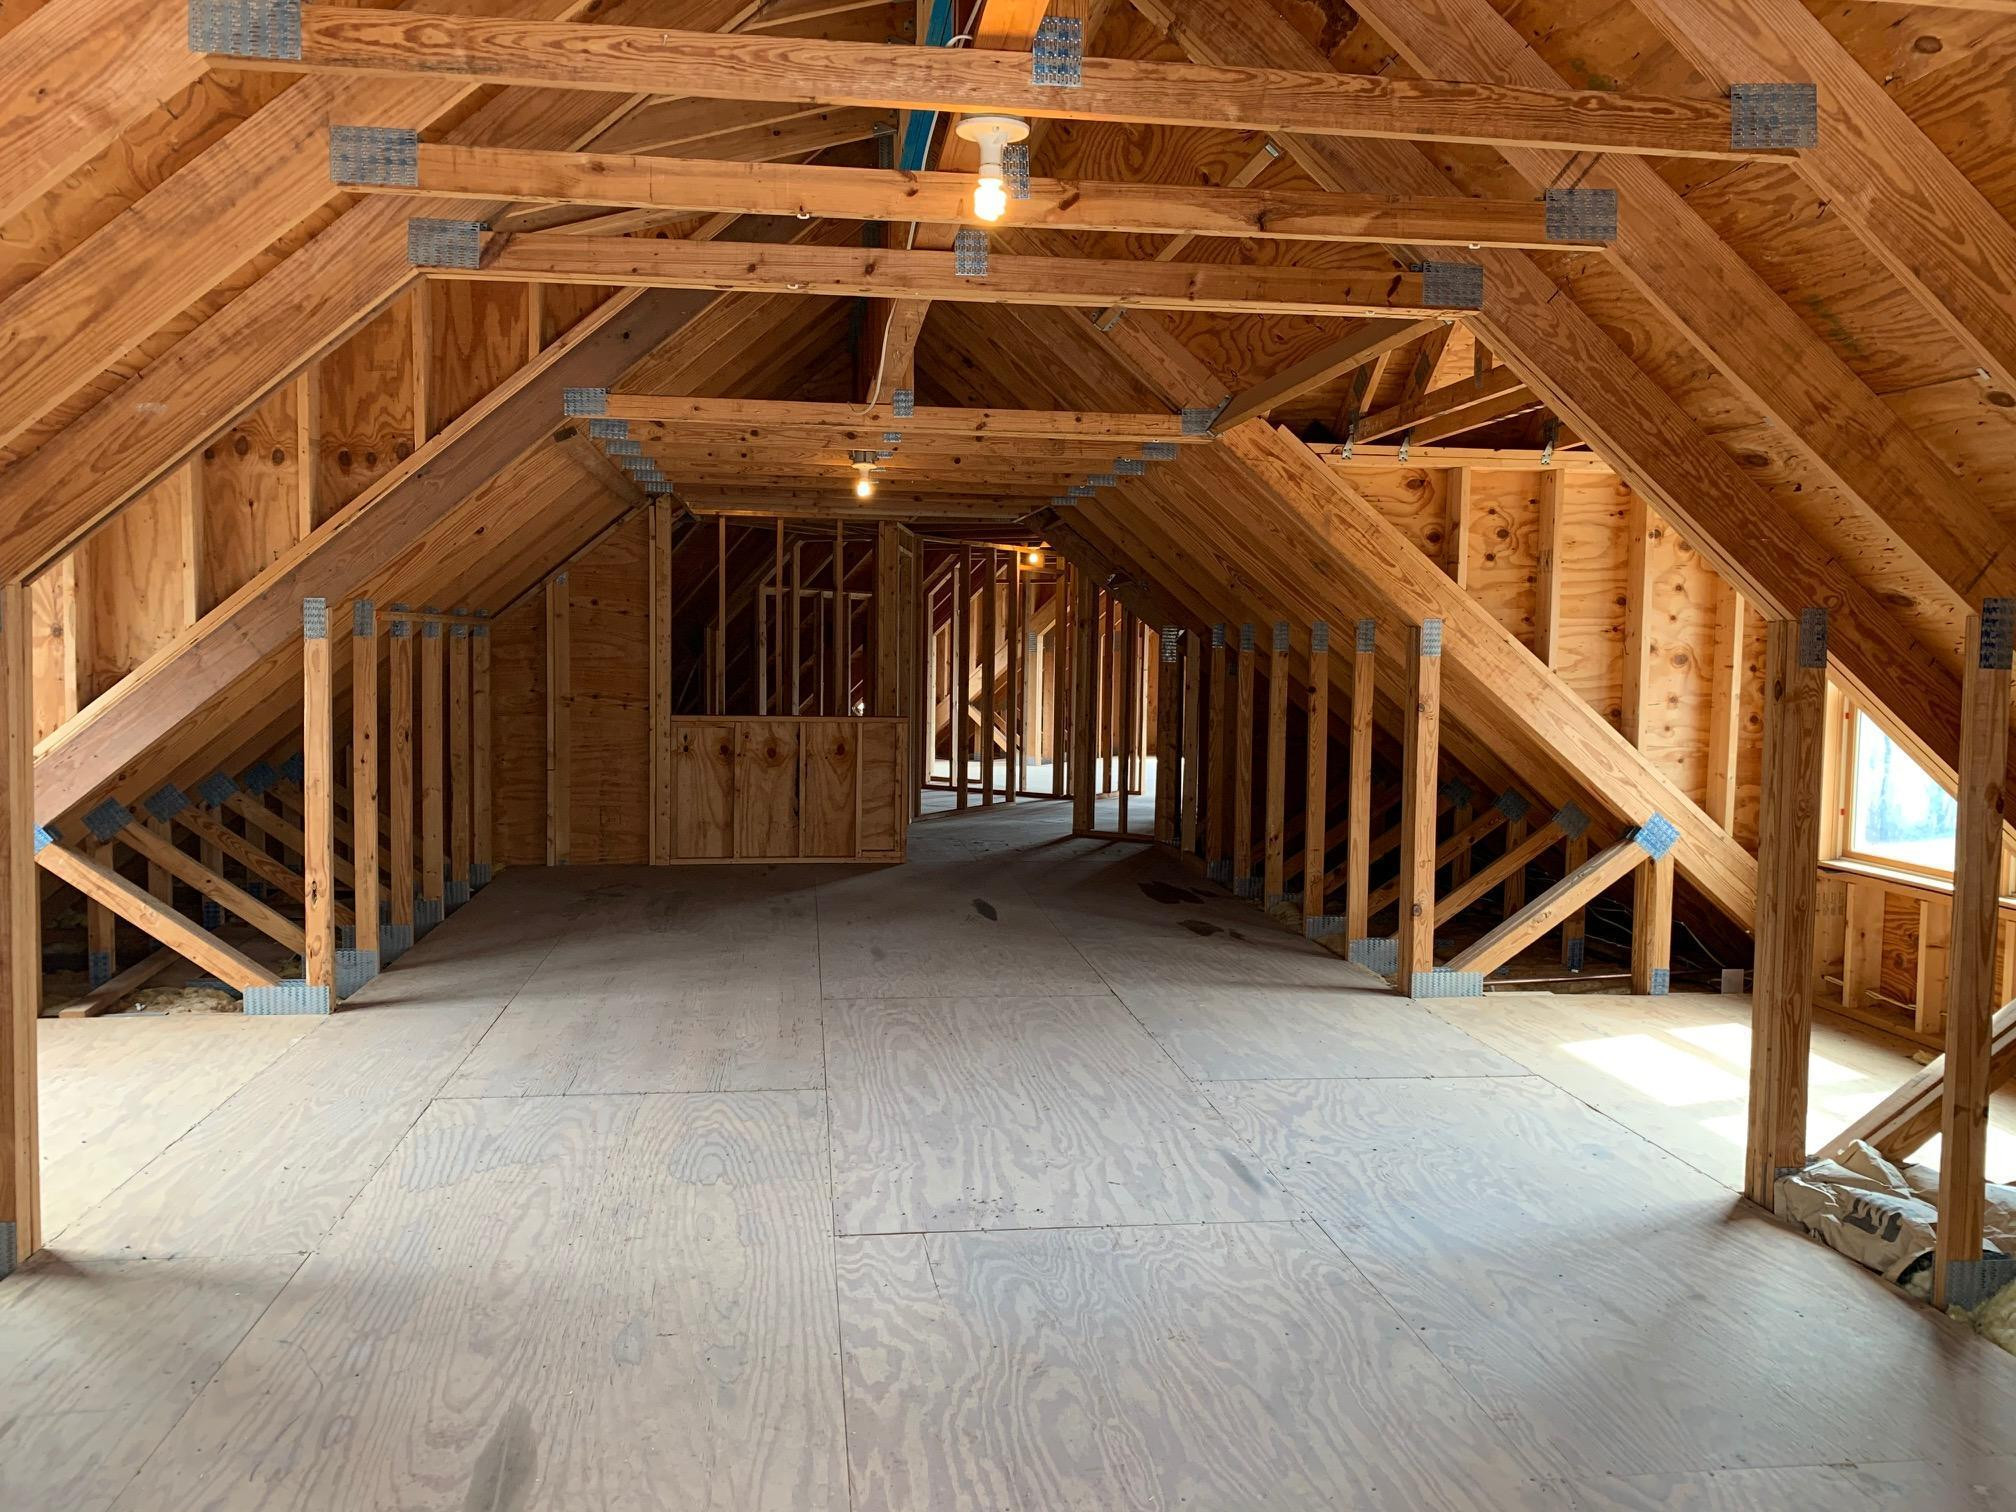 A view of the 1500 square foot bonus potential that is just upstairs from the wonderful garage space. Can you say: Man Cave, Barndominium, ADU, home business office? Who knows what it's future may hold.